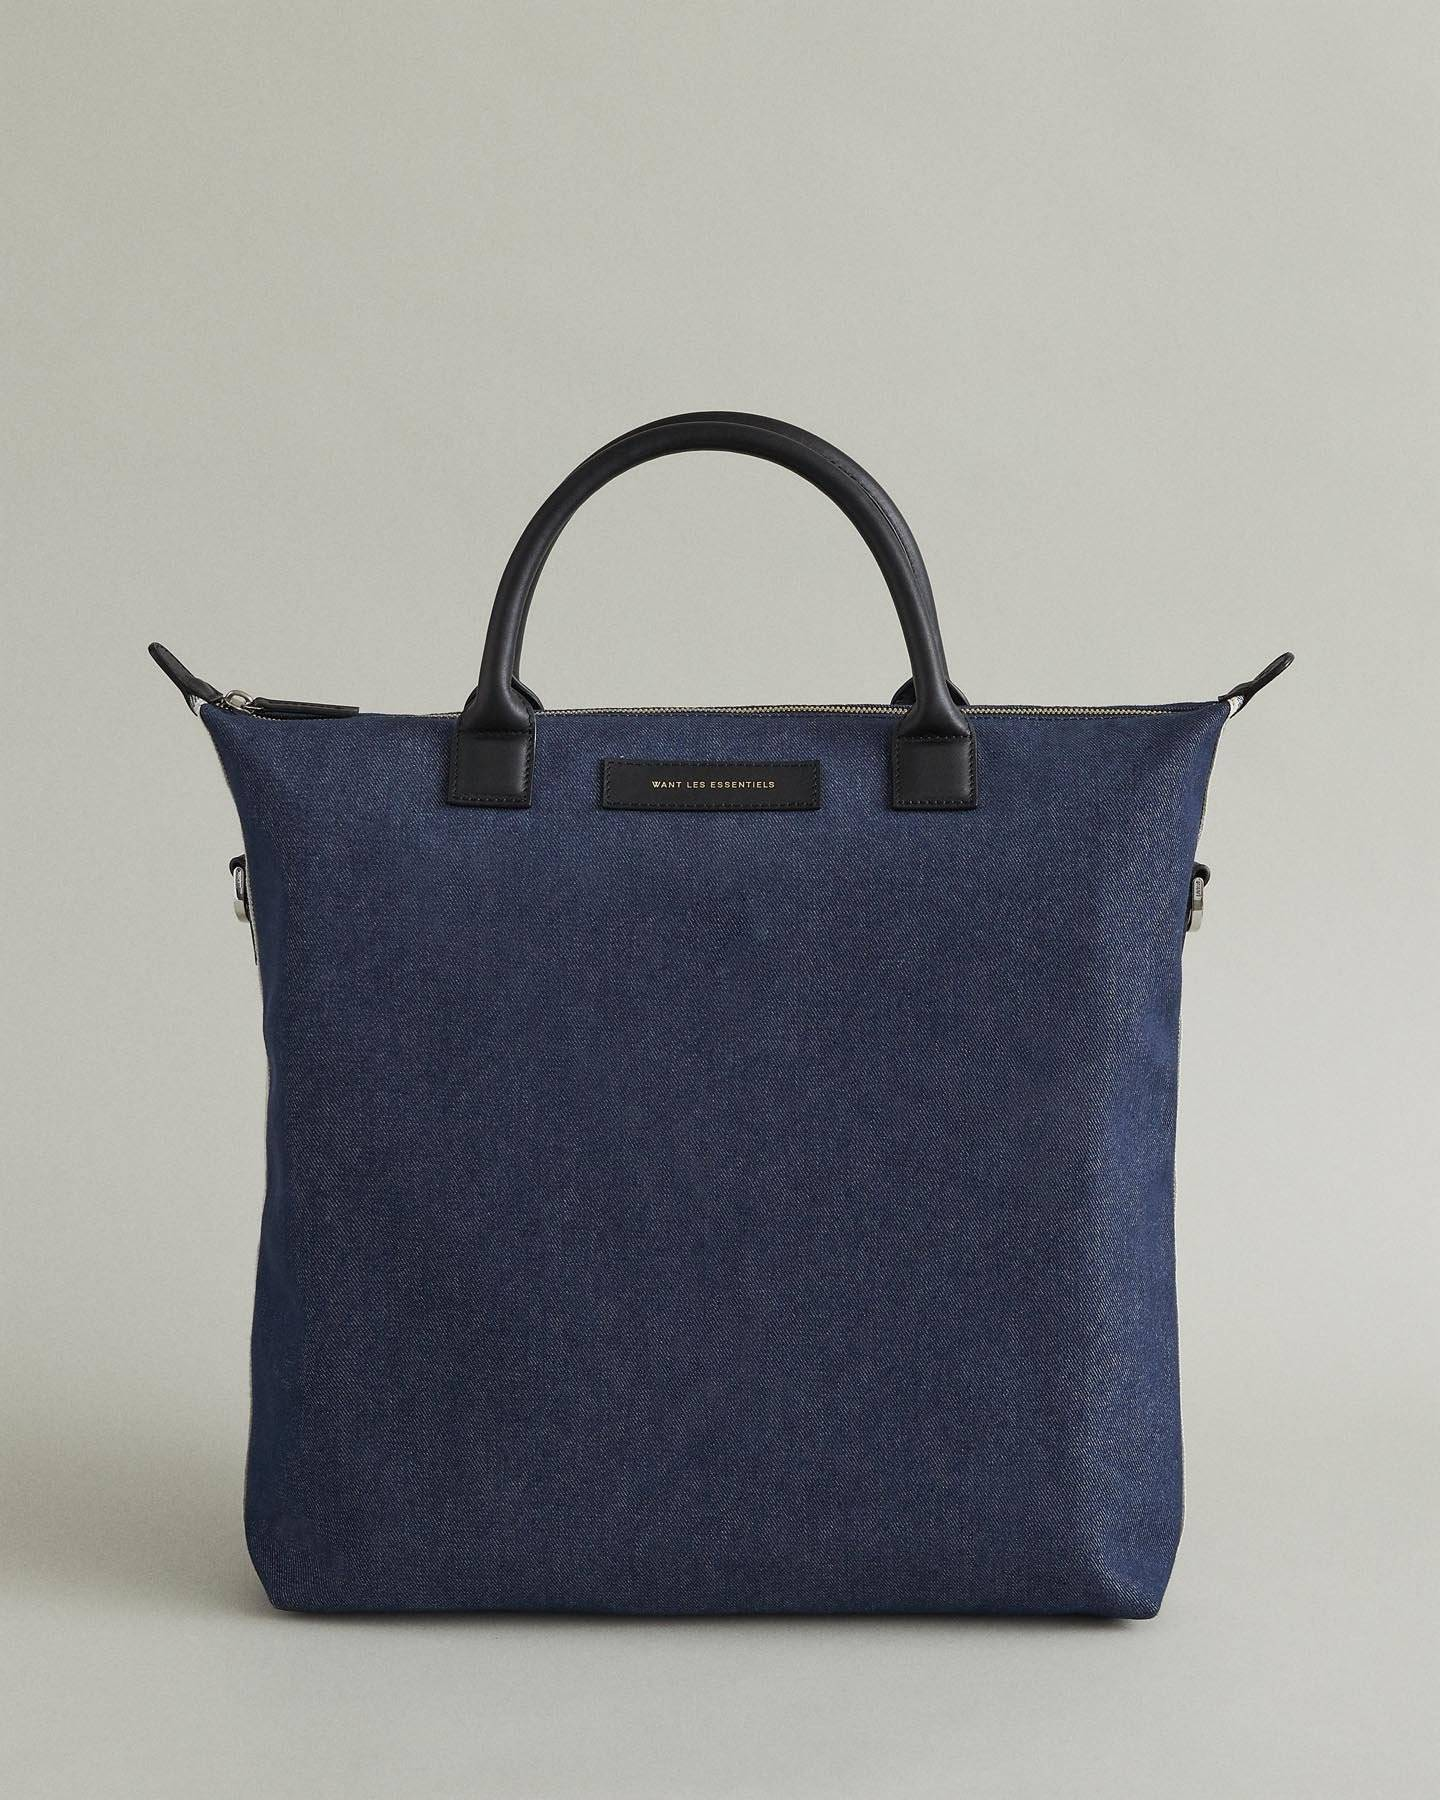 /products/bruce-pask-collaboration-ohare-denim-shopper-tote